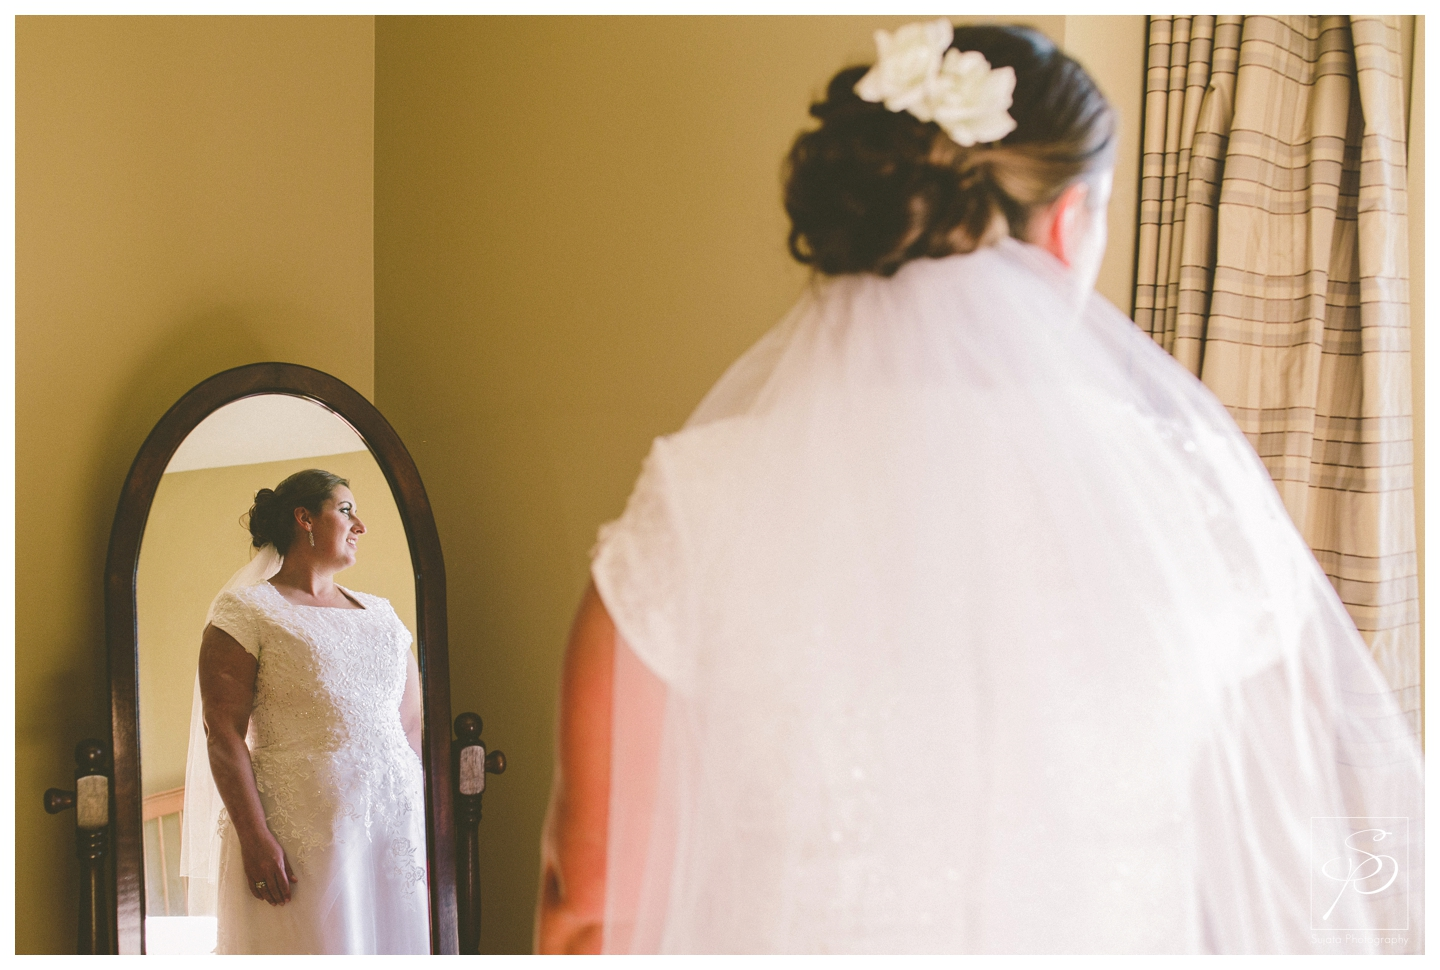 Bridal portrait in mirror at acreage wedding